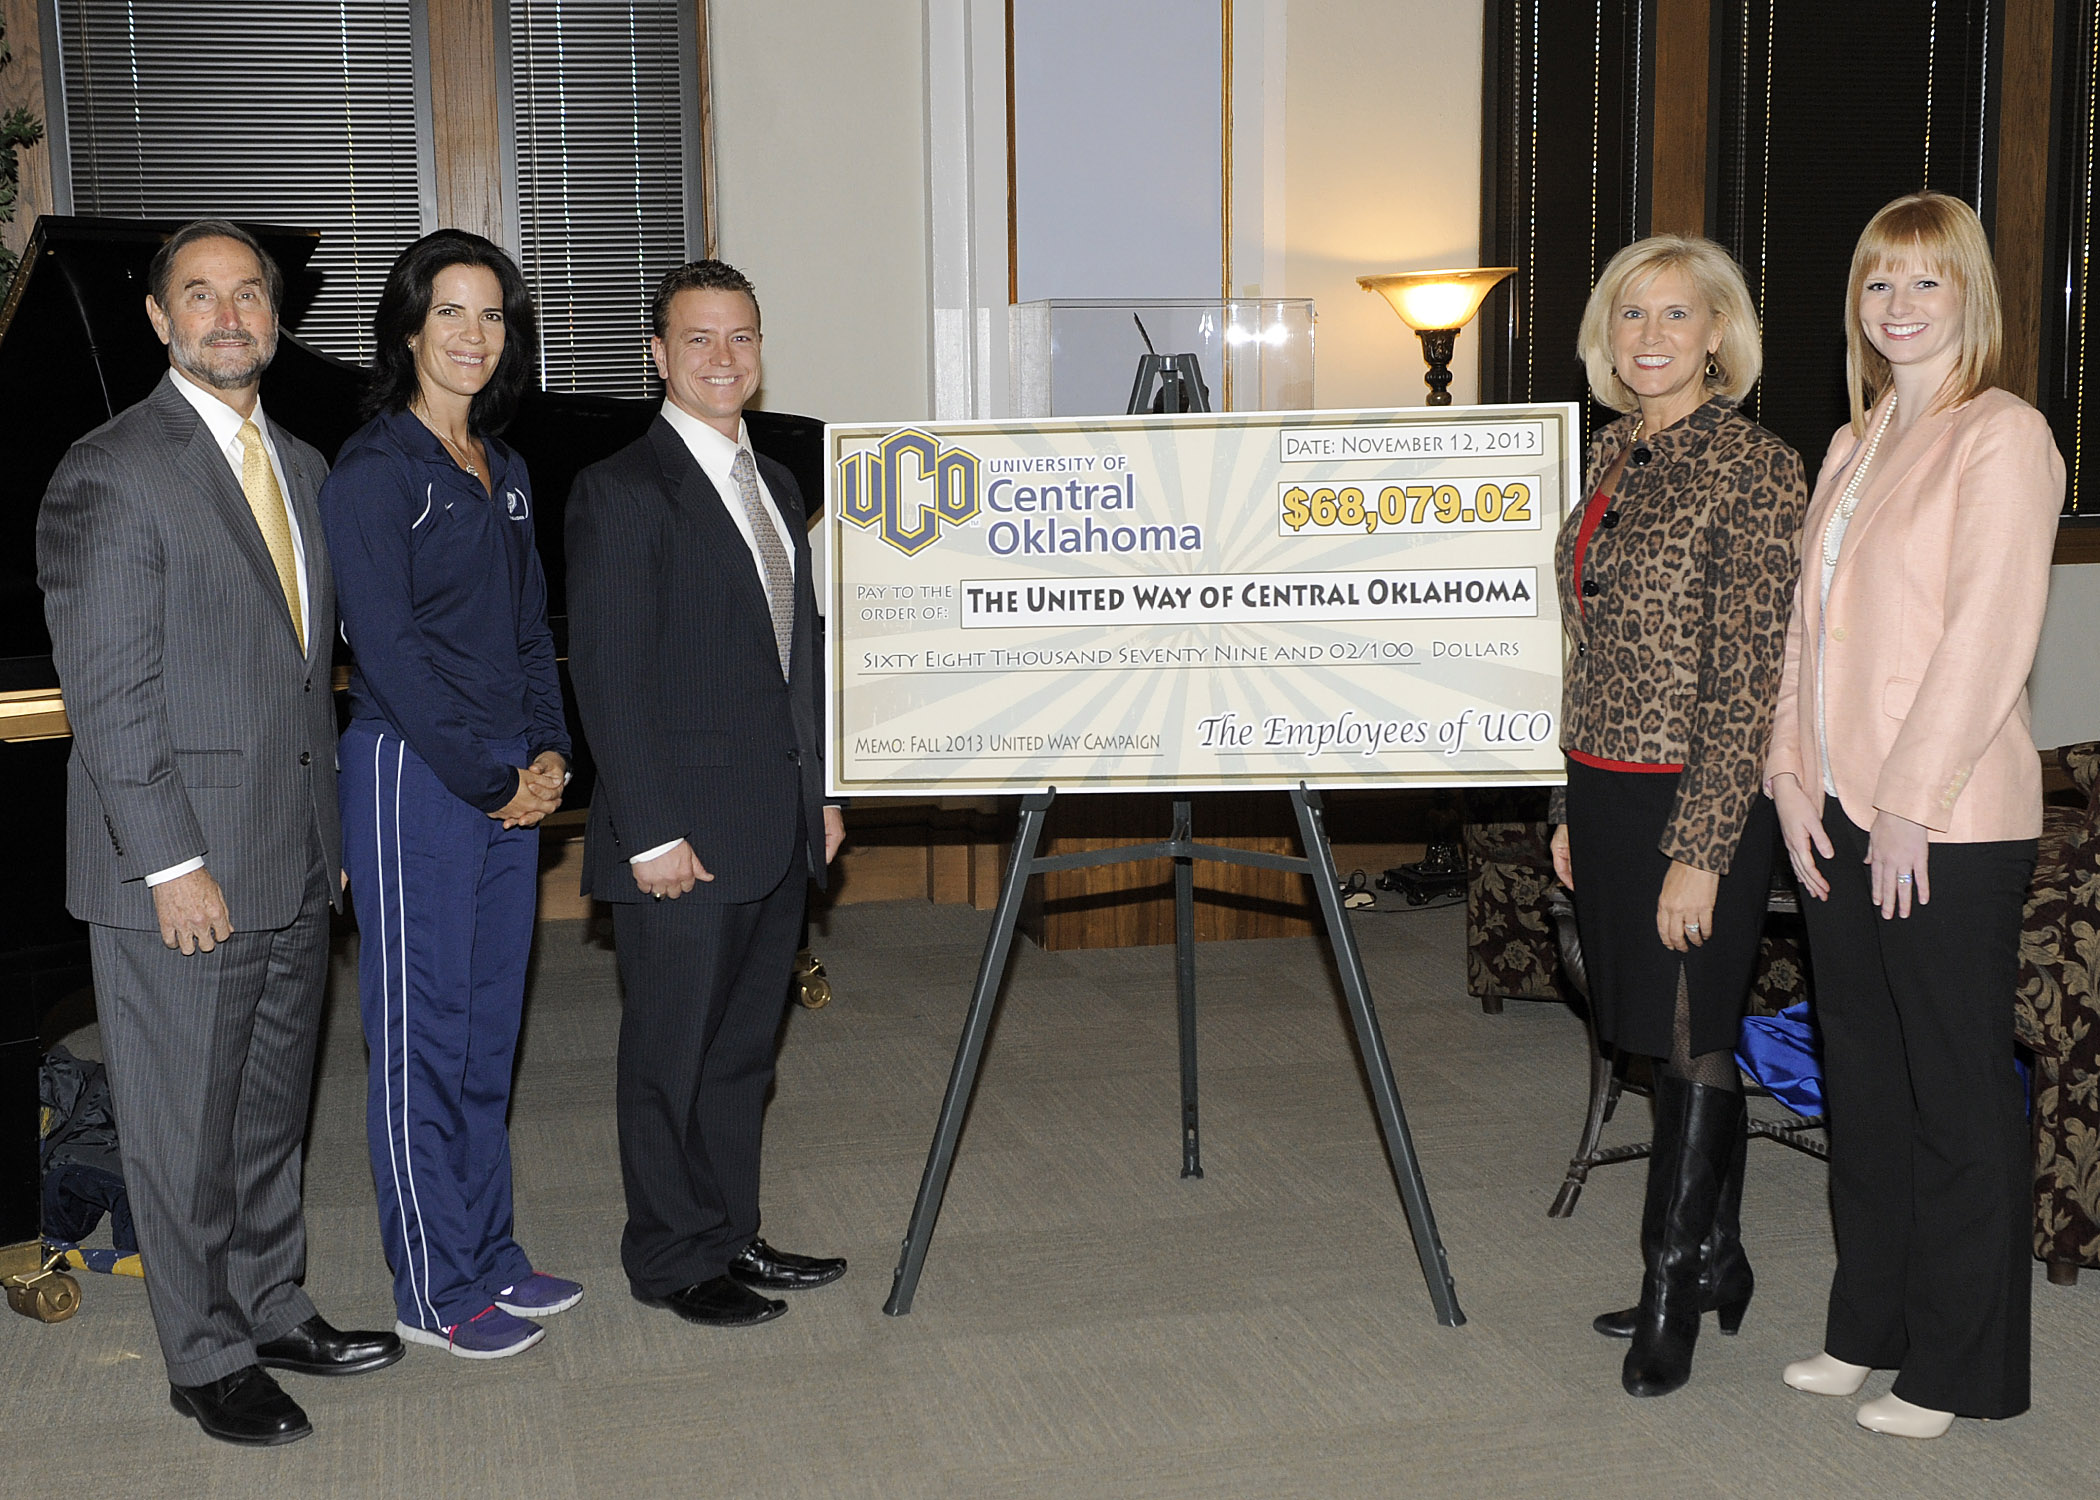 The University of Central Oklahoma on Wednesday announced its 2013 United Way Campaign raised $68,079.02, a 13.5 percent over 2012. UCO President Don Betz, Ph.D.; Martha Brennan, Ph.D., UCO women's track coach and 2013 UCO United Way Campaign co-chair; Rob Howard, director of project management for Student Affairs and 2013 UCO United Way Campaign co-chair; Donna Lawrence, co-chair of the United Way of Central Oklahoma 2013 campaign; and Ashleigh Arnall, Canadian County director and resource development account executive for the United Way of Central Oklahoma were on hand for the presentation of the funds.